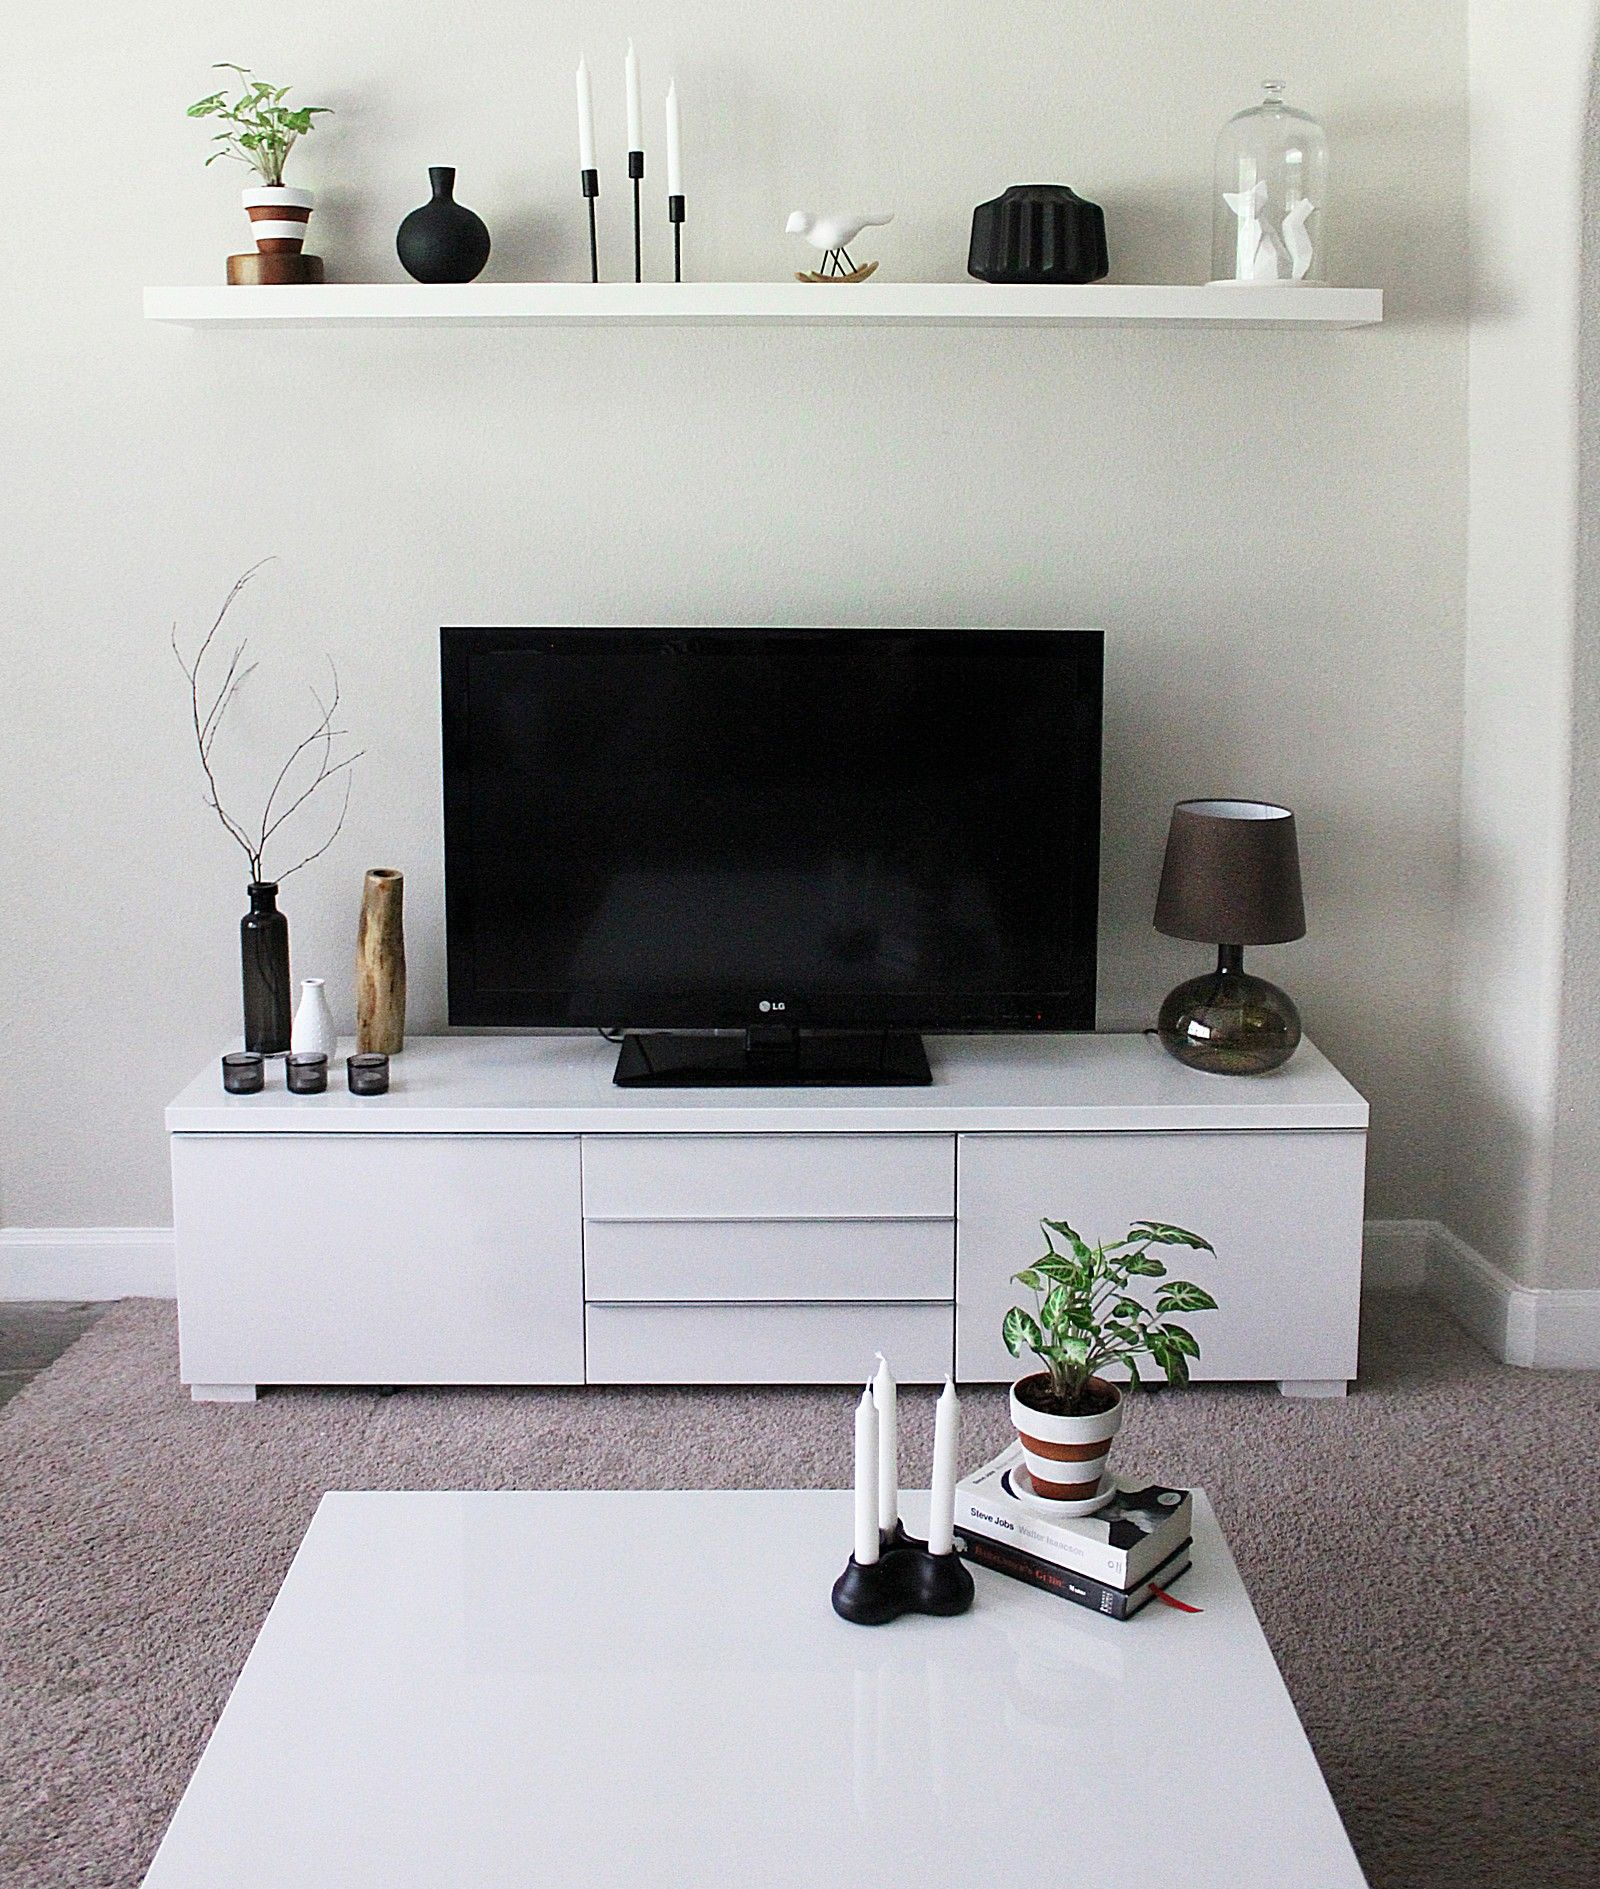 Minimalist Tv Stand And Cabinet Ikea Besta  Interiors Design Fair Ikea Small Living Room Ideas Review